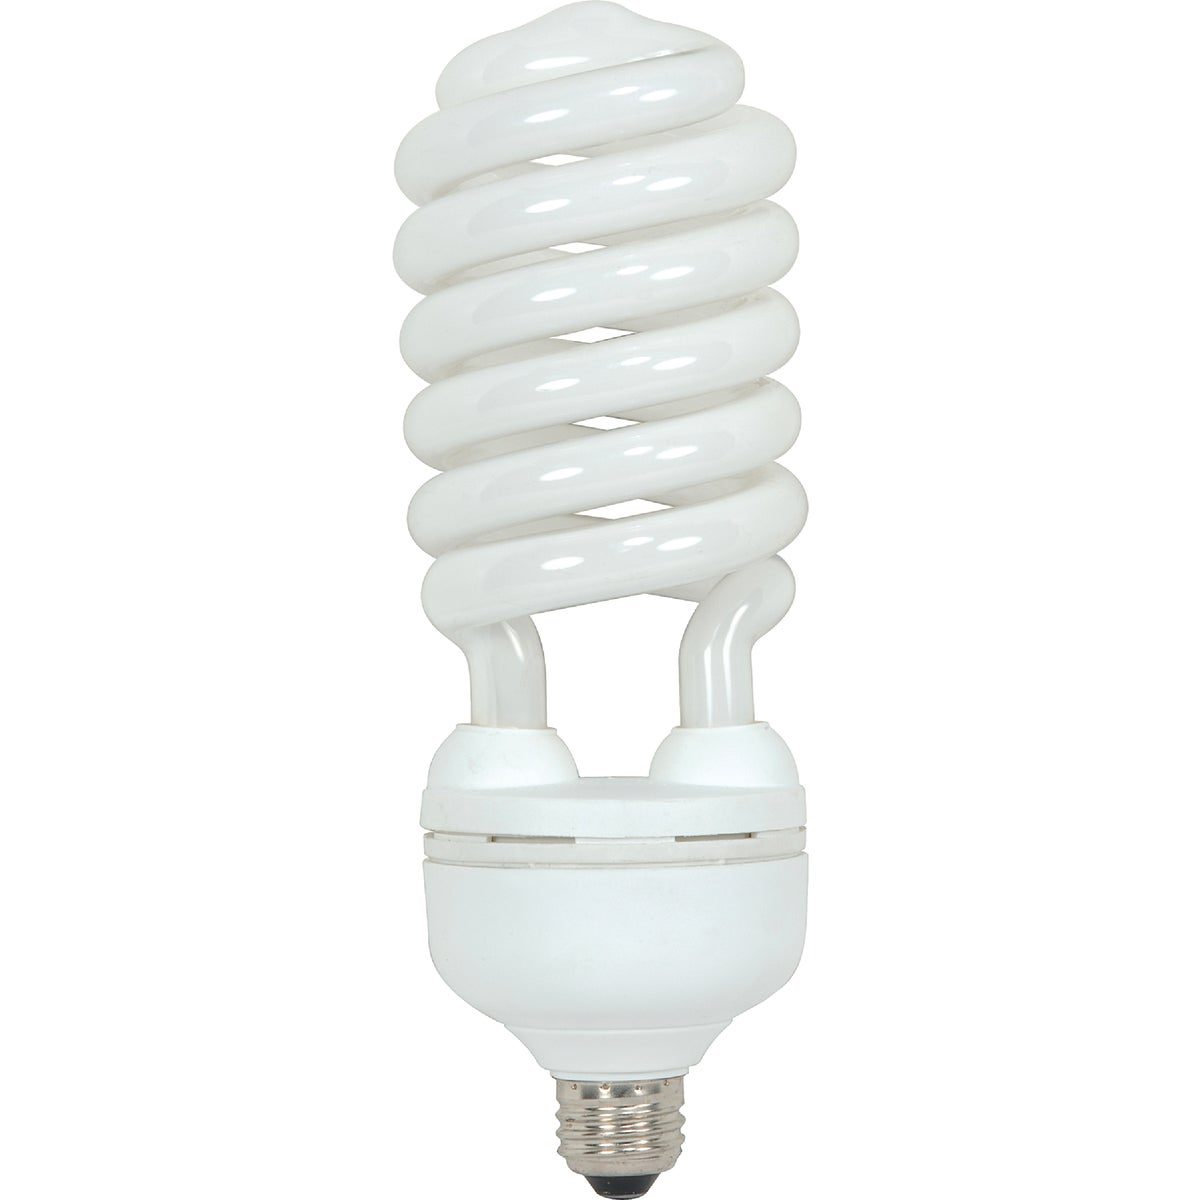 55W CFL SPIRAL BULB - 78965 FLE55HT5/2/SW/BX by G E Lighting